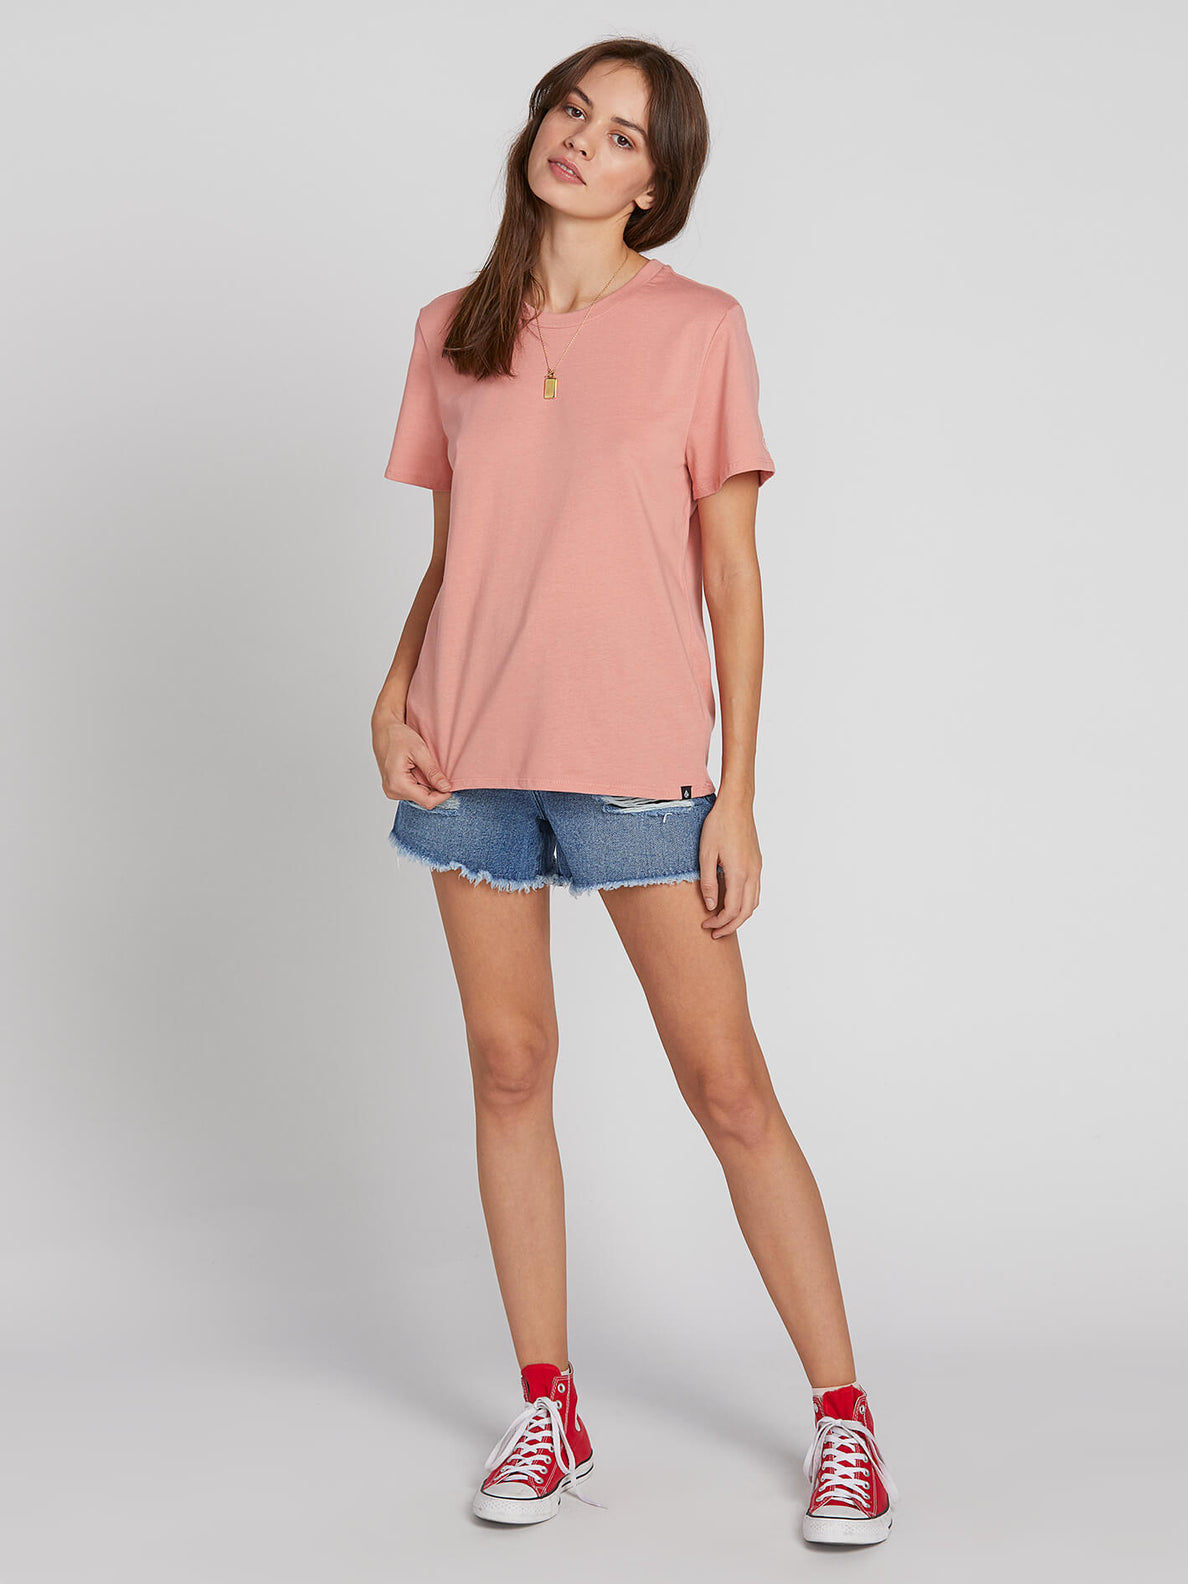 Womens Solid Short Sleeve Tee - Pink